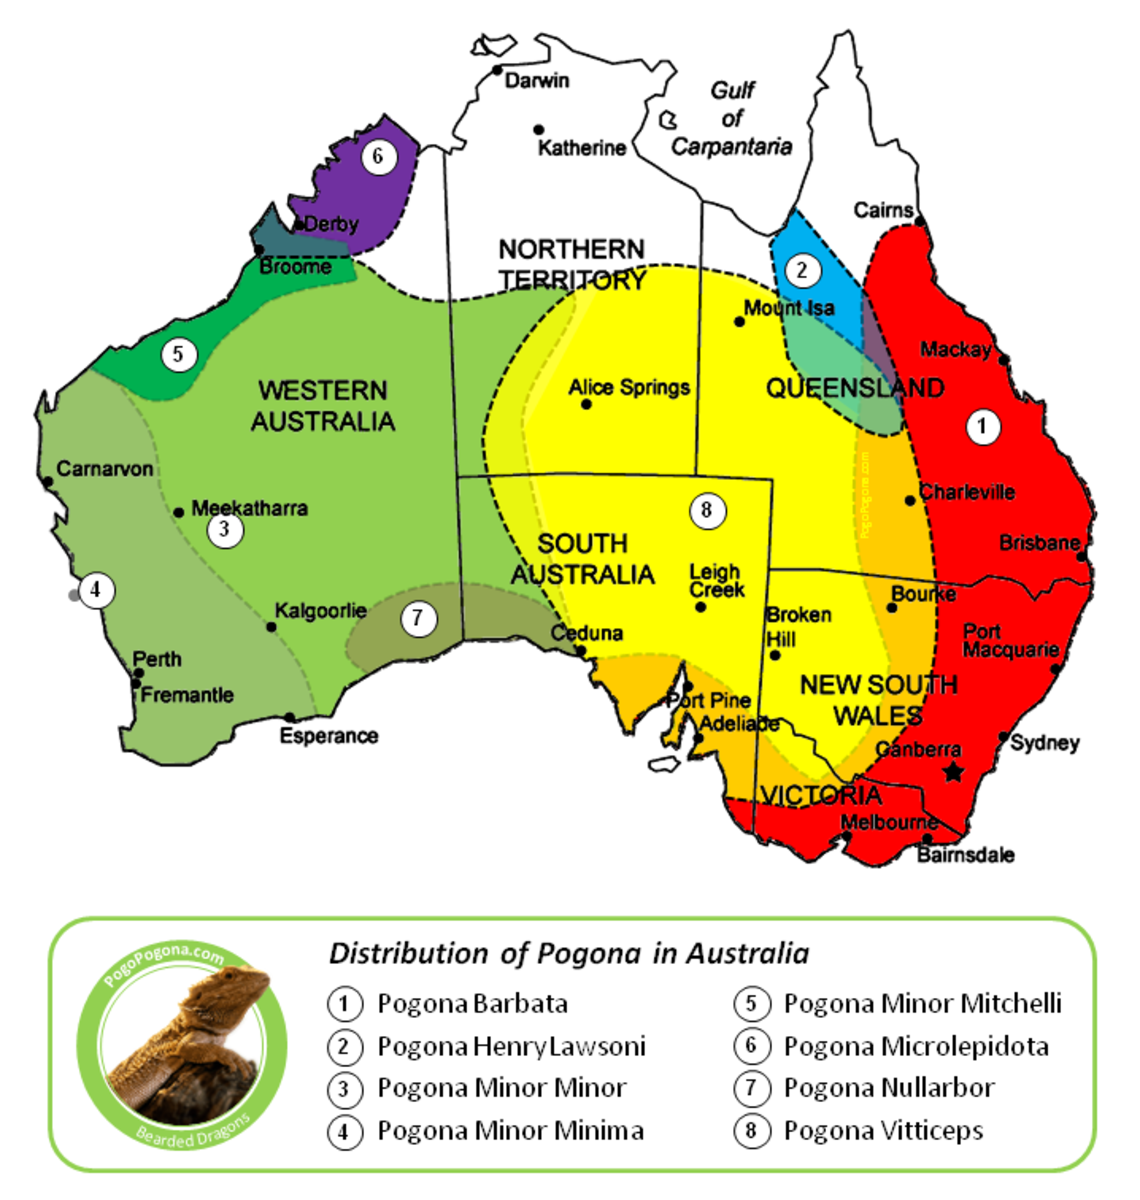 Bearded dragon distribution in Australia.